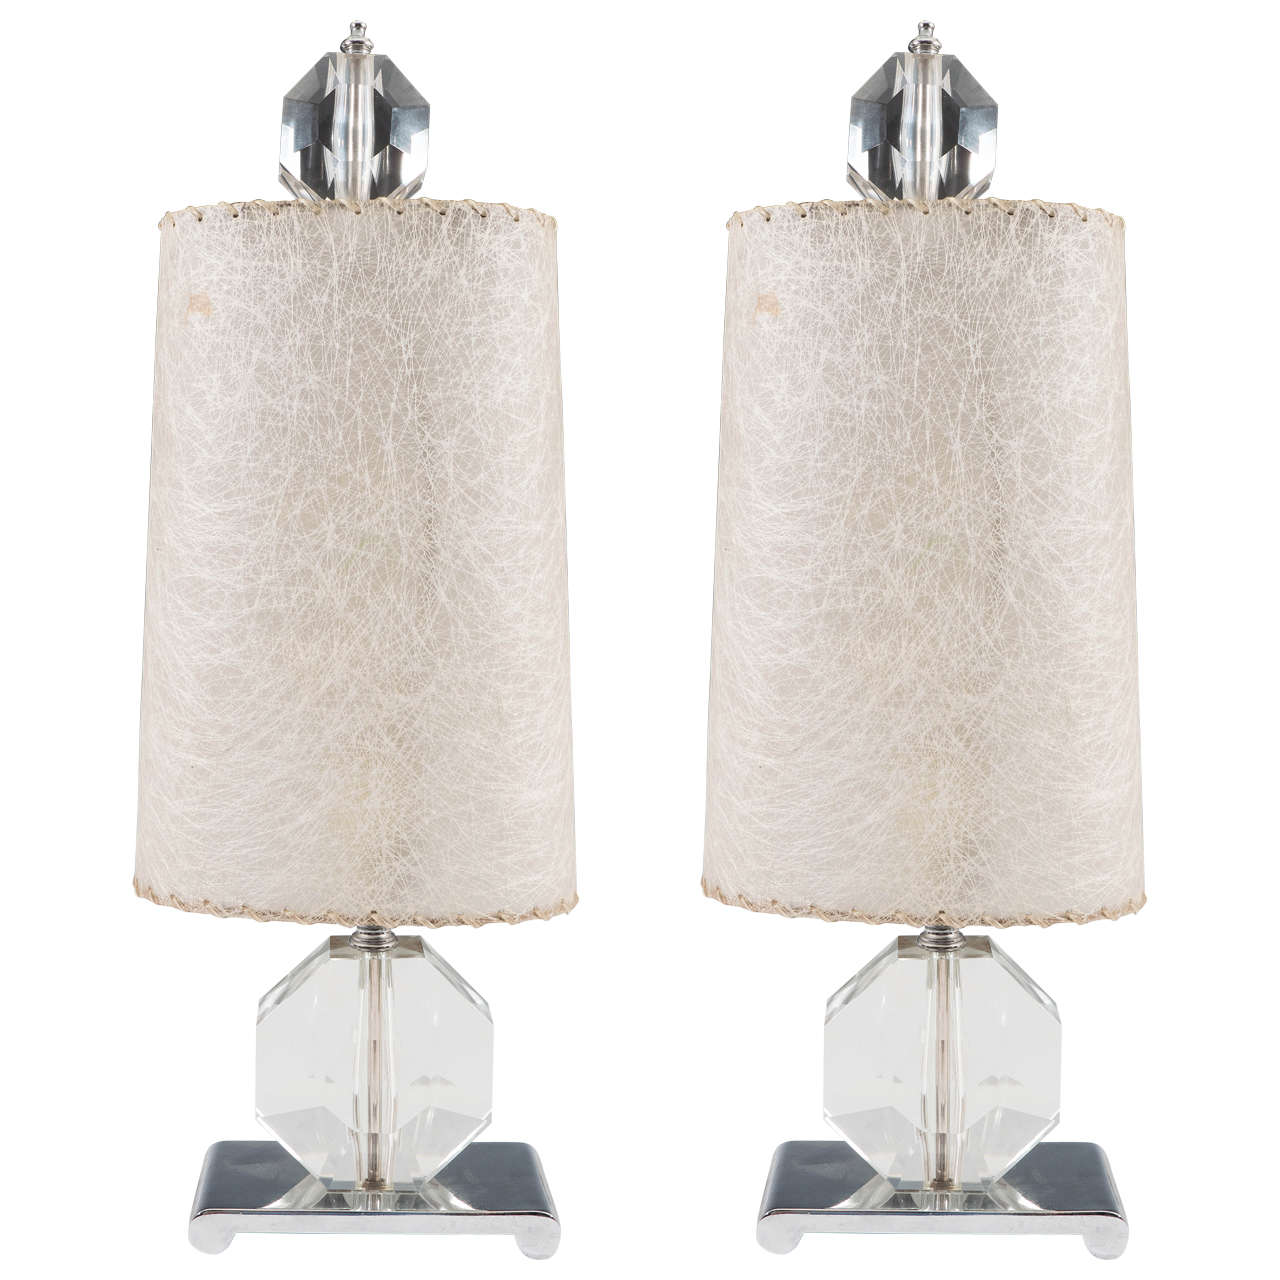 Rare Pair of Glass Gemstone Form Table Lamps on Chrome Bases